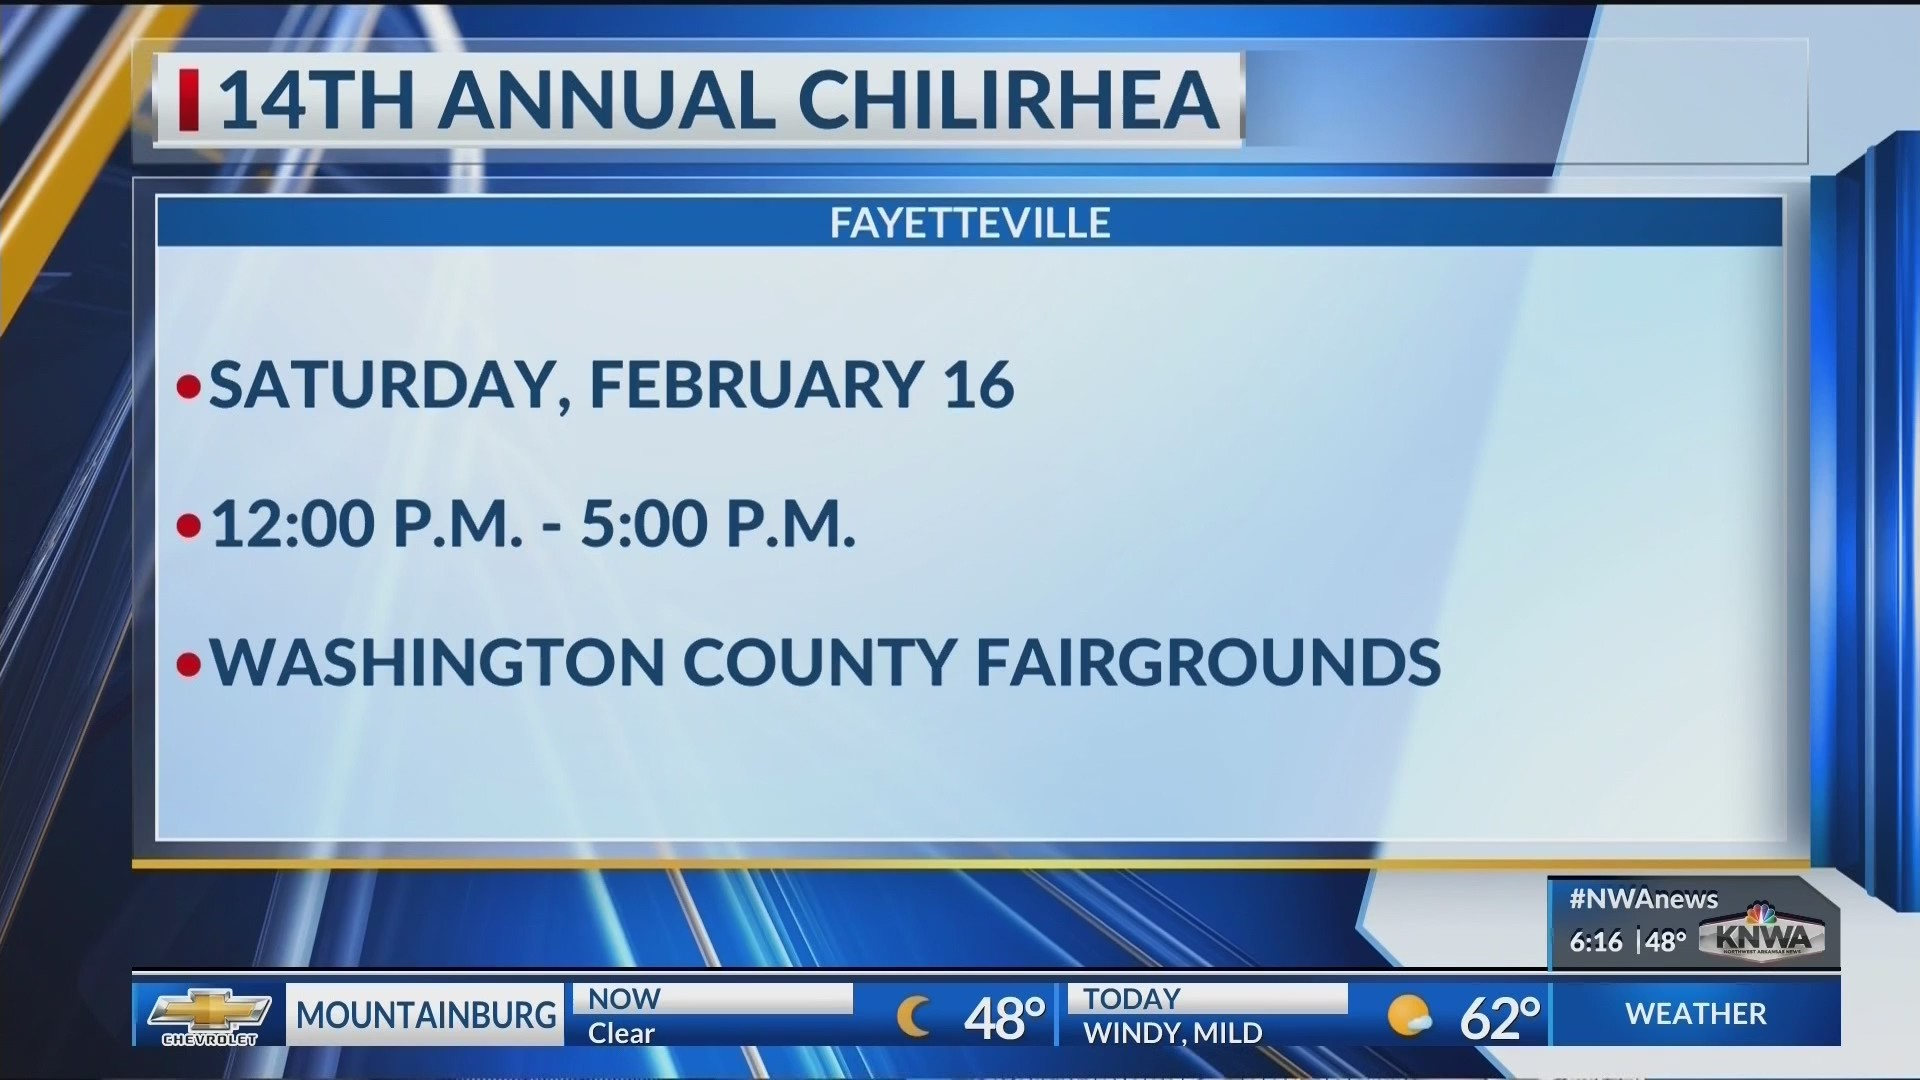 KNWA_Today__14th_Annual_Chilirhea_0_20190214123116